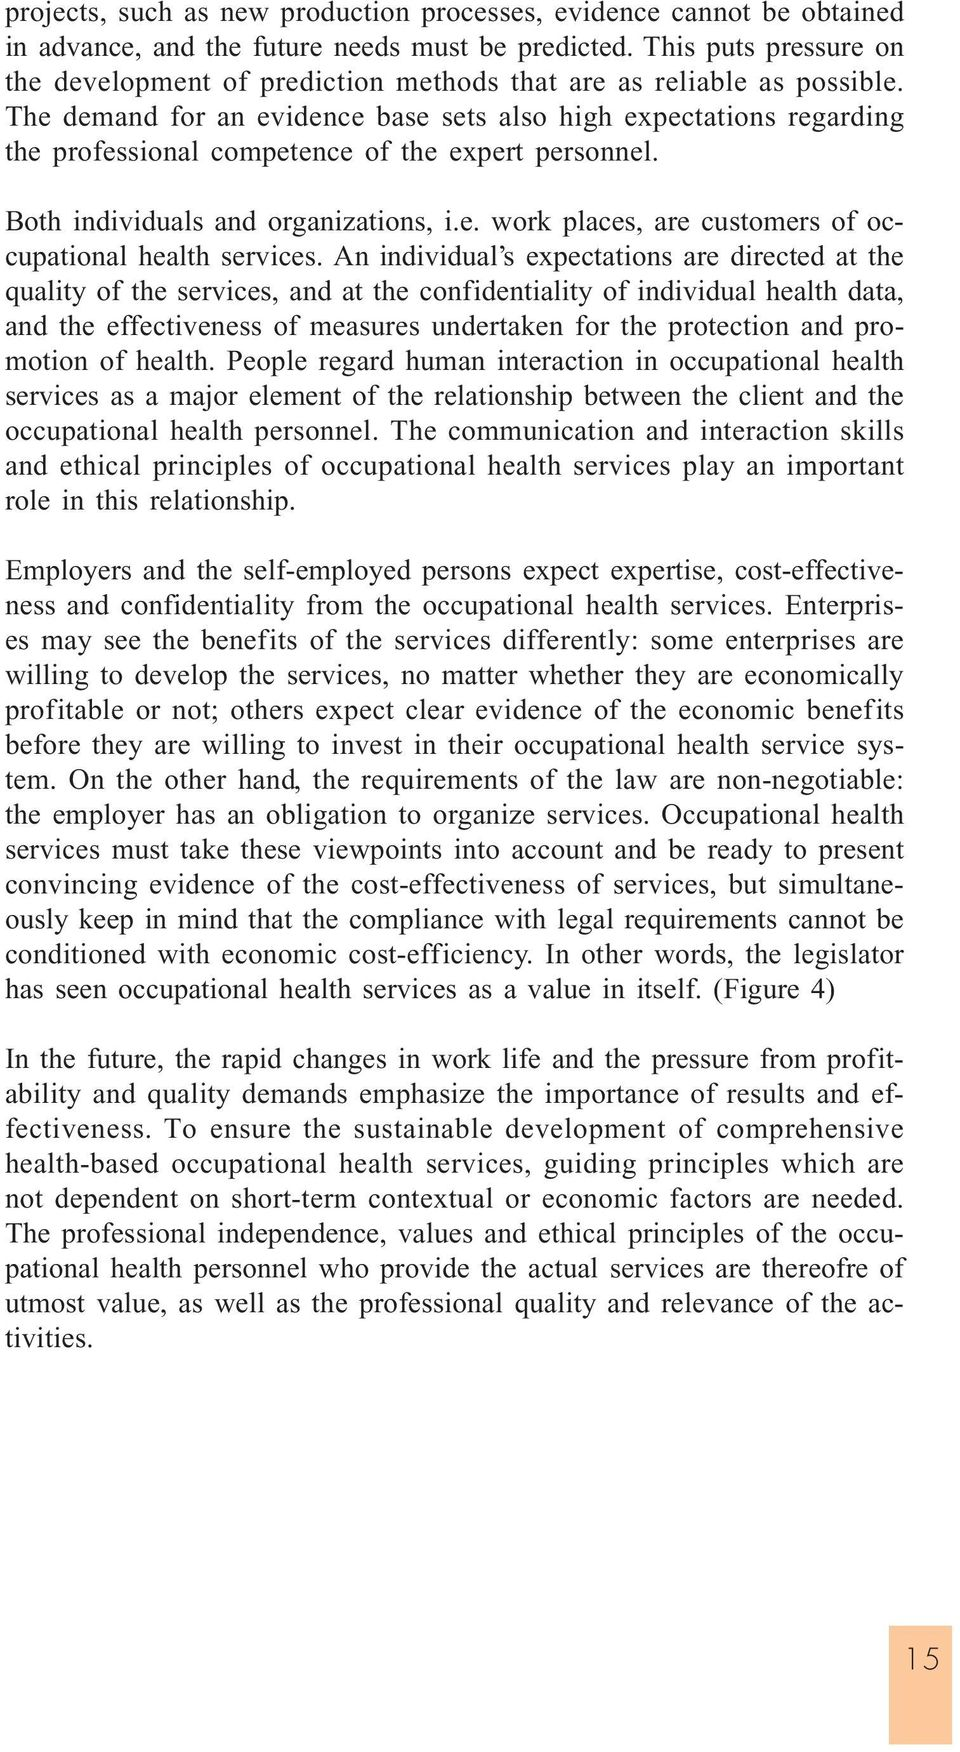 The demand for an evidence base sets also high expectations regarding the professional competence of the expert personnel. Both individuals and organizations, i.e. work places, are customers of occupational health services.